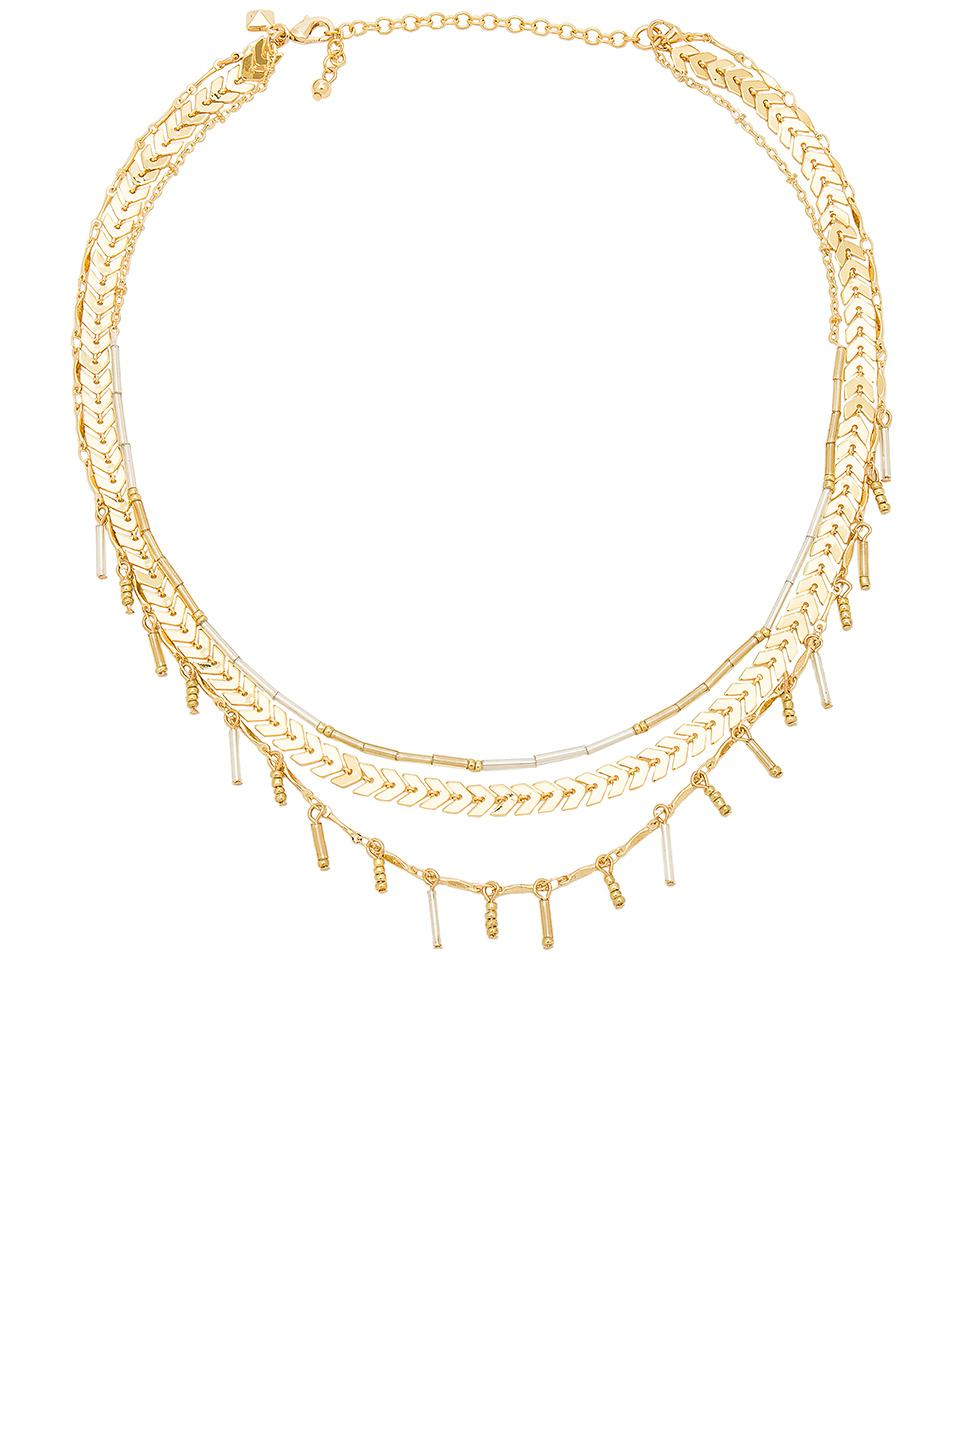 Circle & Bar Layered Necklace in Metallic Gold Rebecca Minkoff